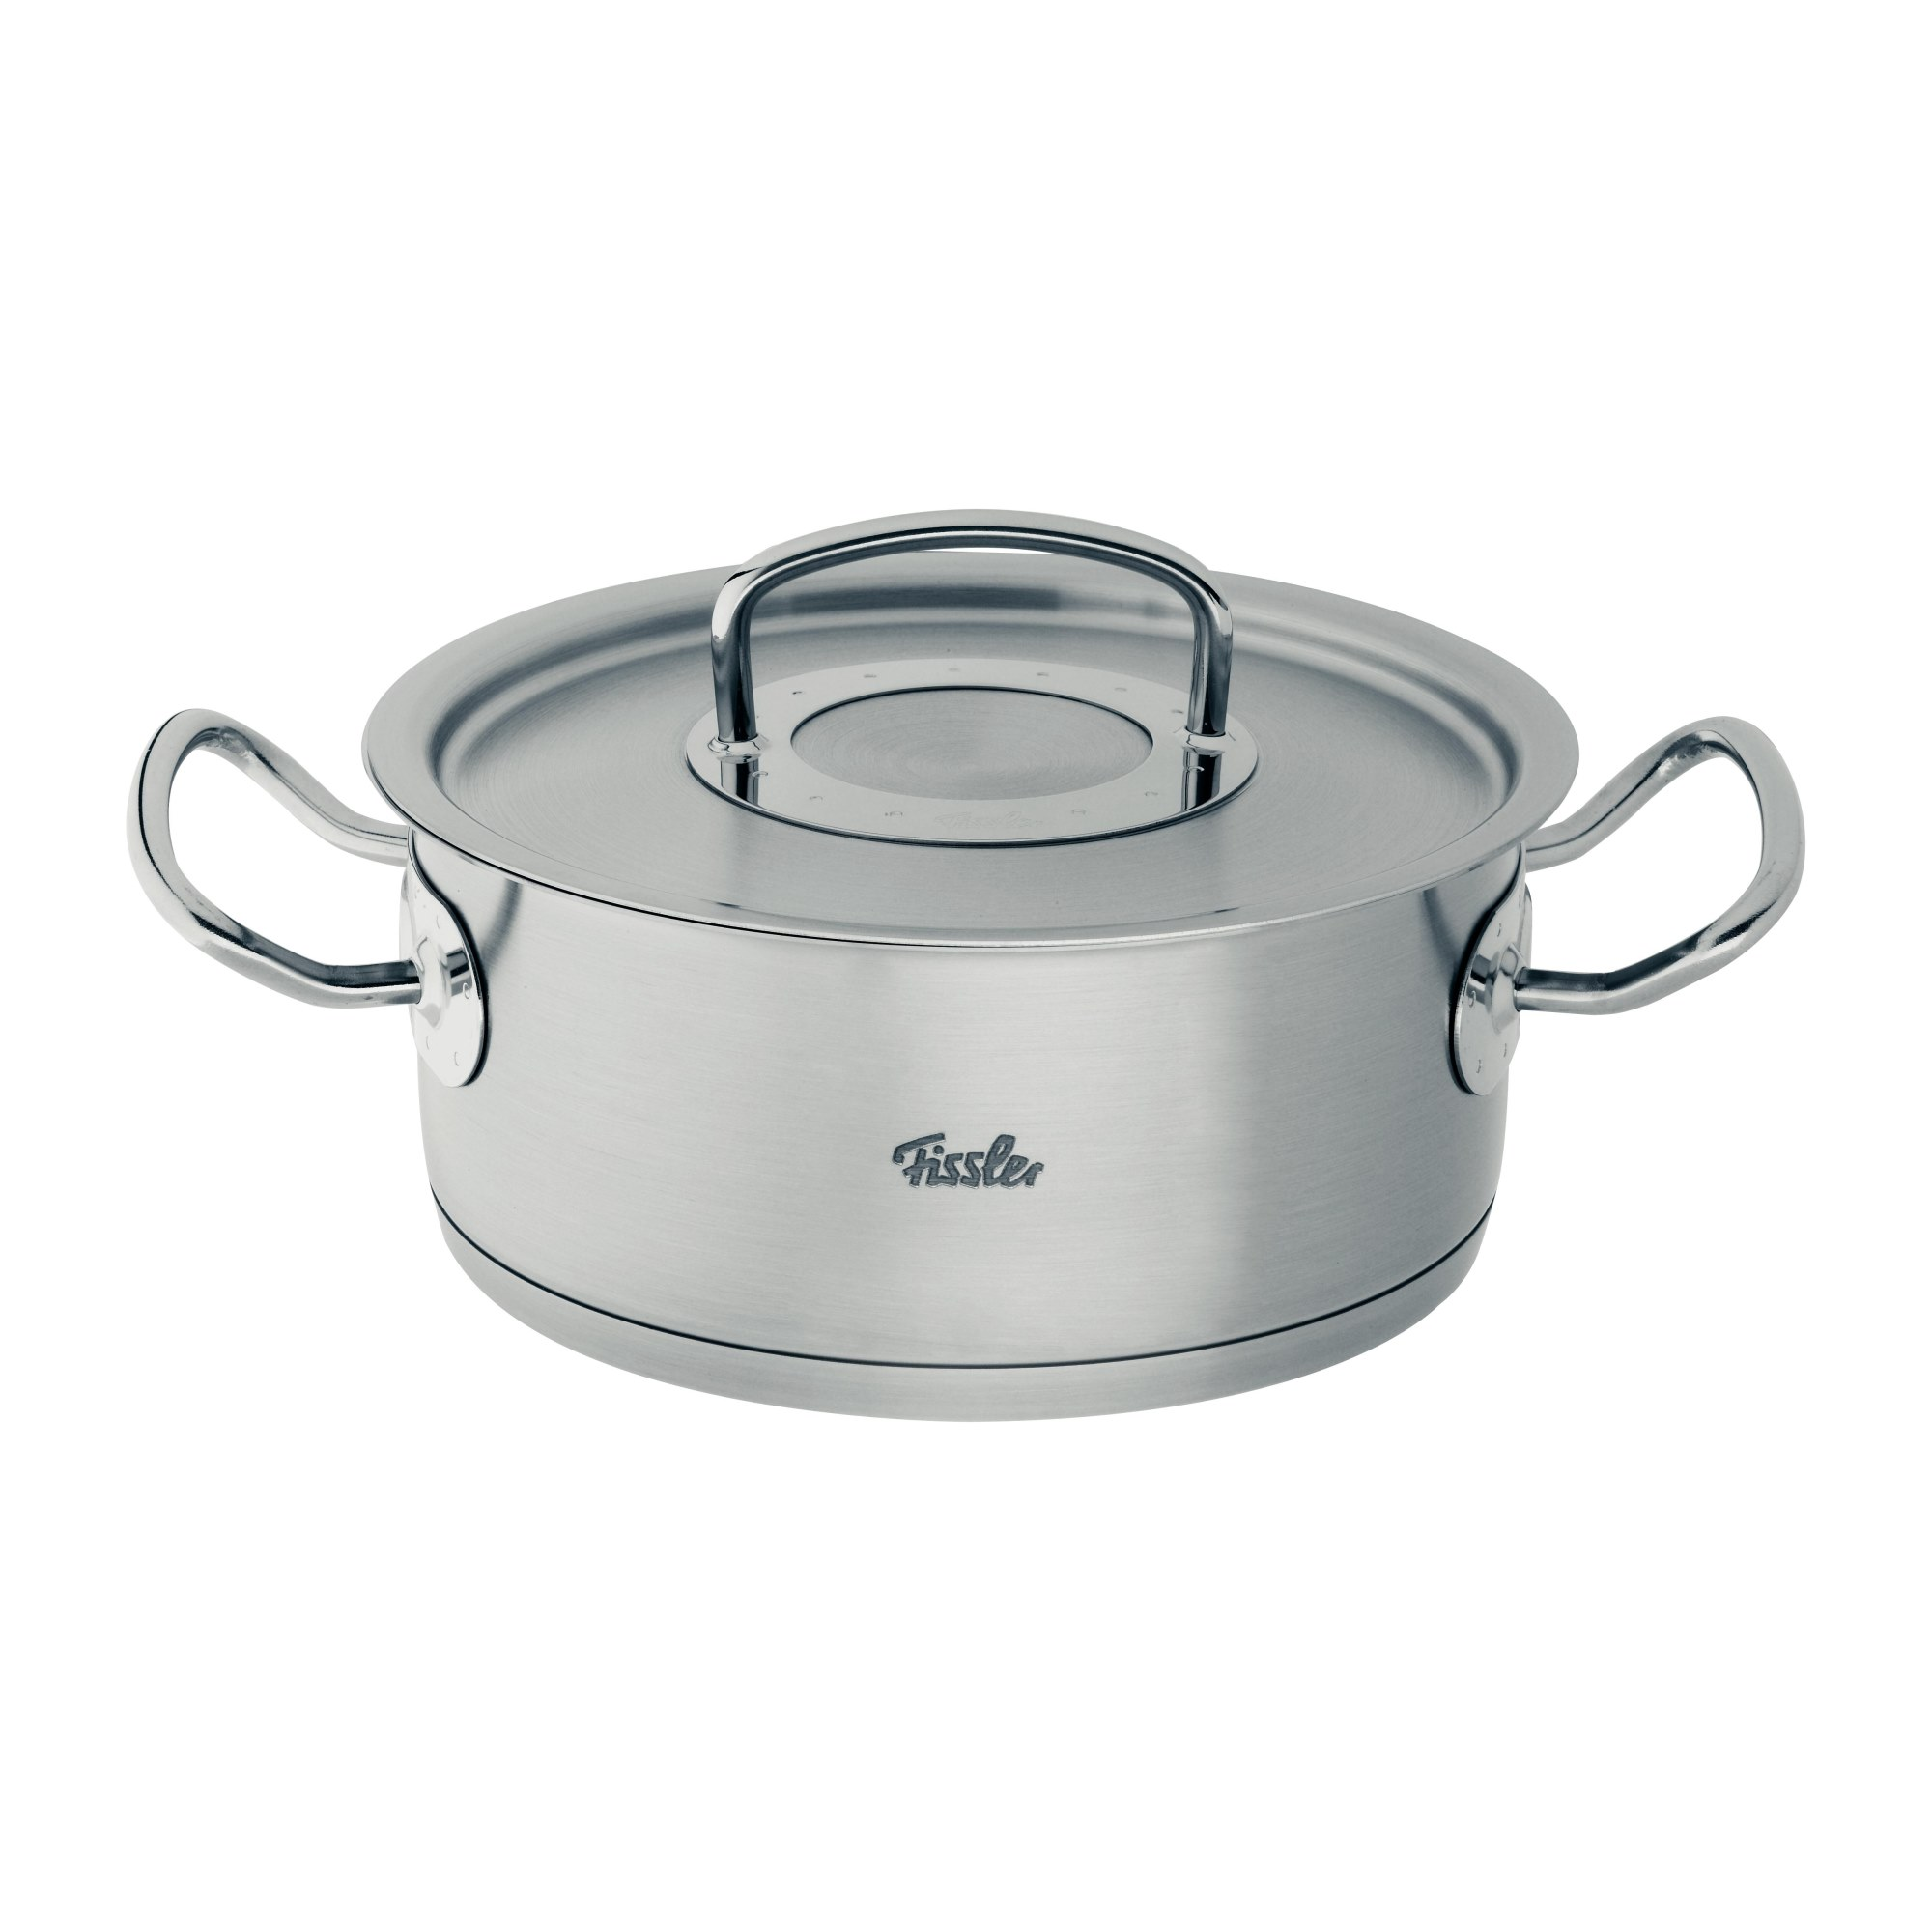 Fissler Original Profi Collection Low Casserole 28 Cm 7 2 Litres Cooking Pots Cooking Cooking Baking 1a Neuware Englisch